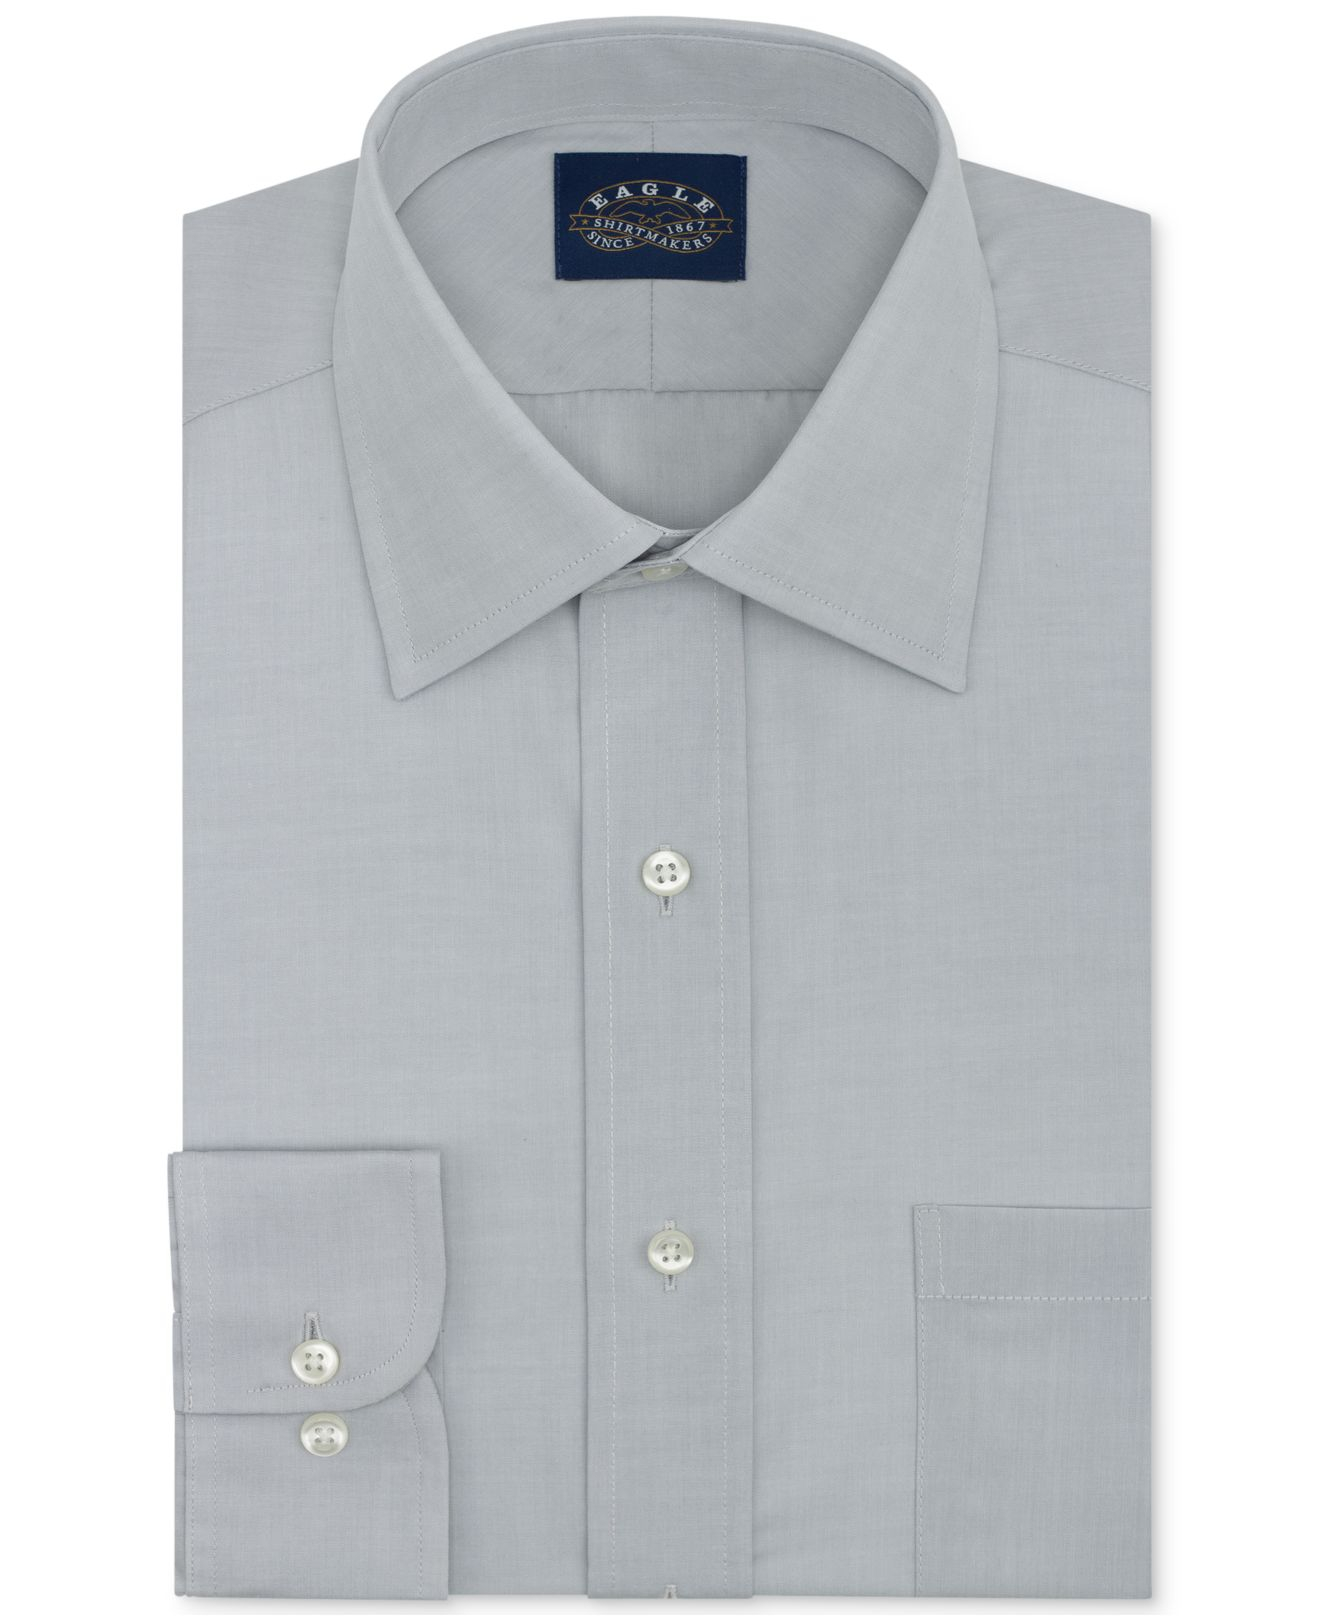 Lyst eagle non iron slim fit solid dress shirt in for Slim fit non iron dress shirts